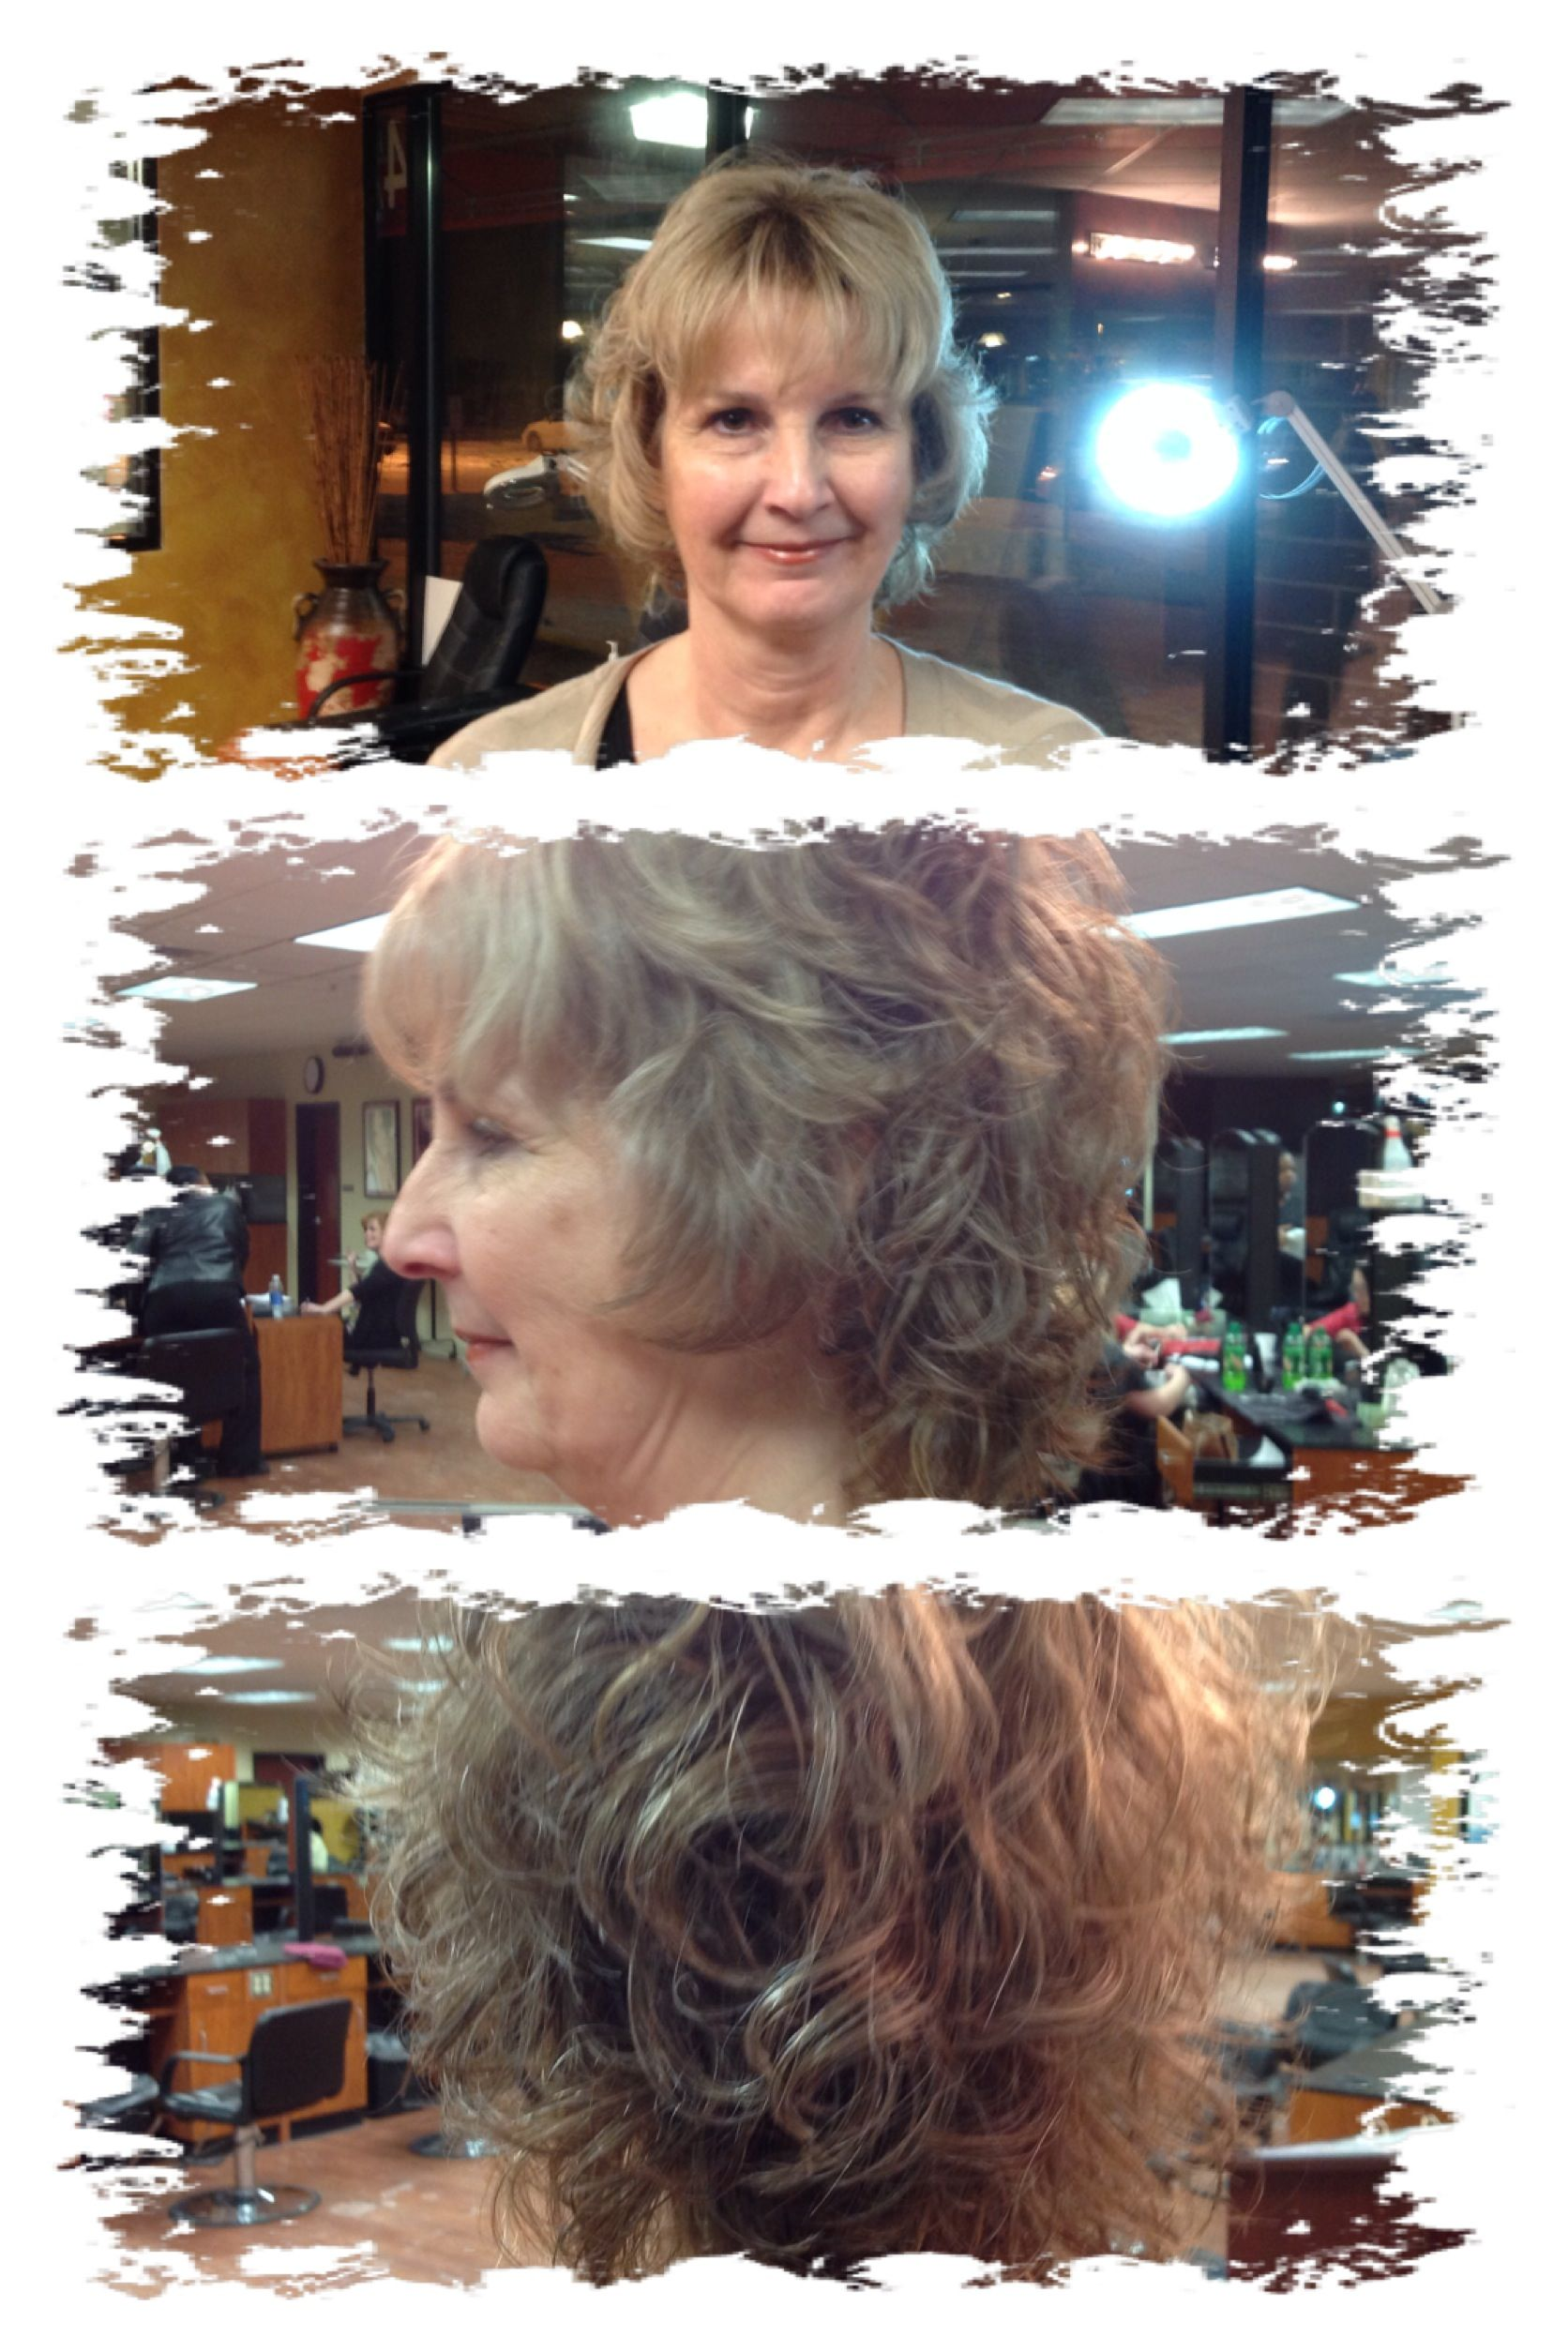 Boy haircuts and color color technique darker at the roots to light  love hair  pinterest